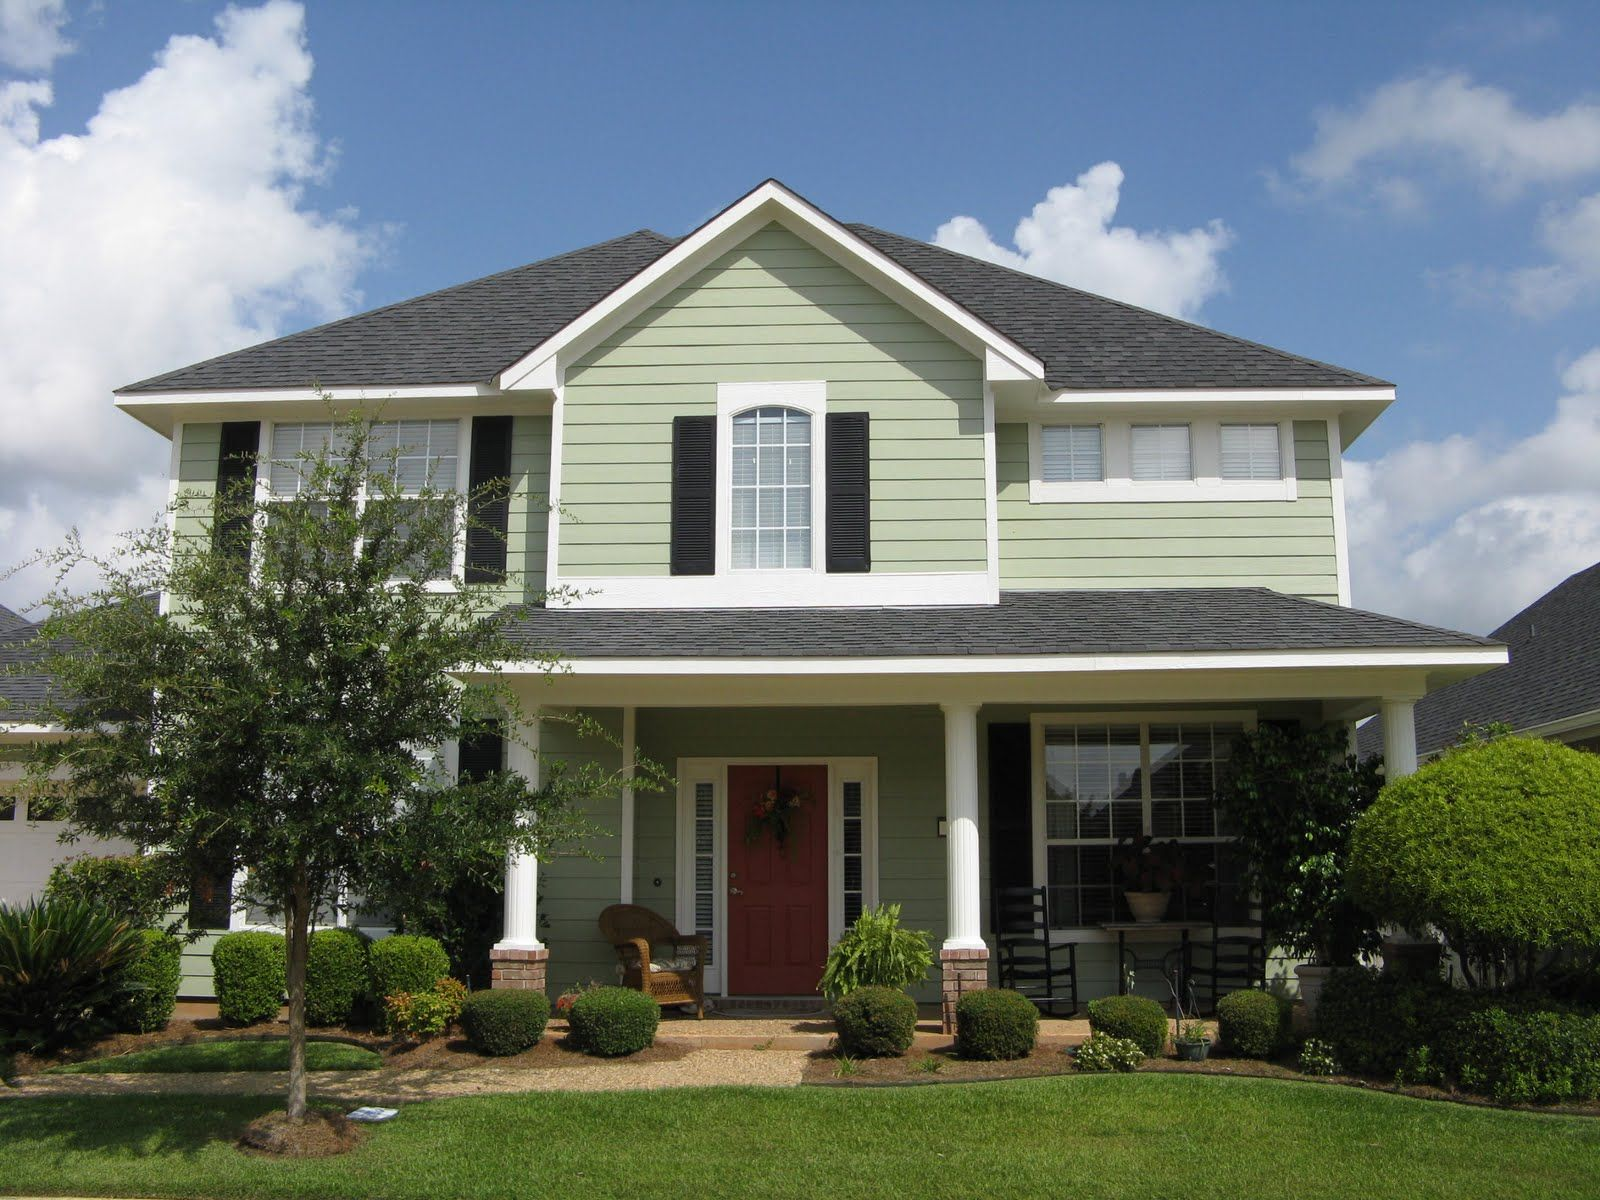 101 best exterior house paint ideas images on pinterest